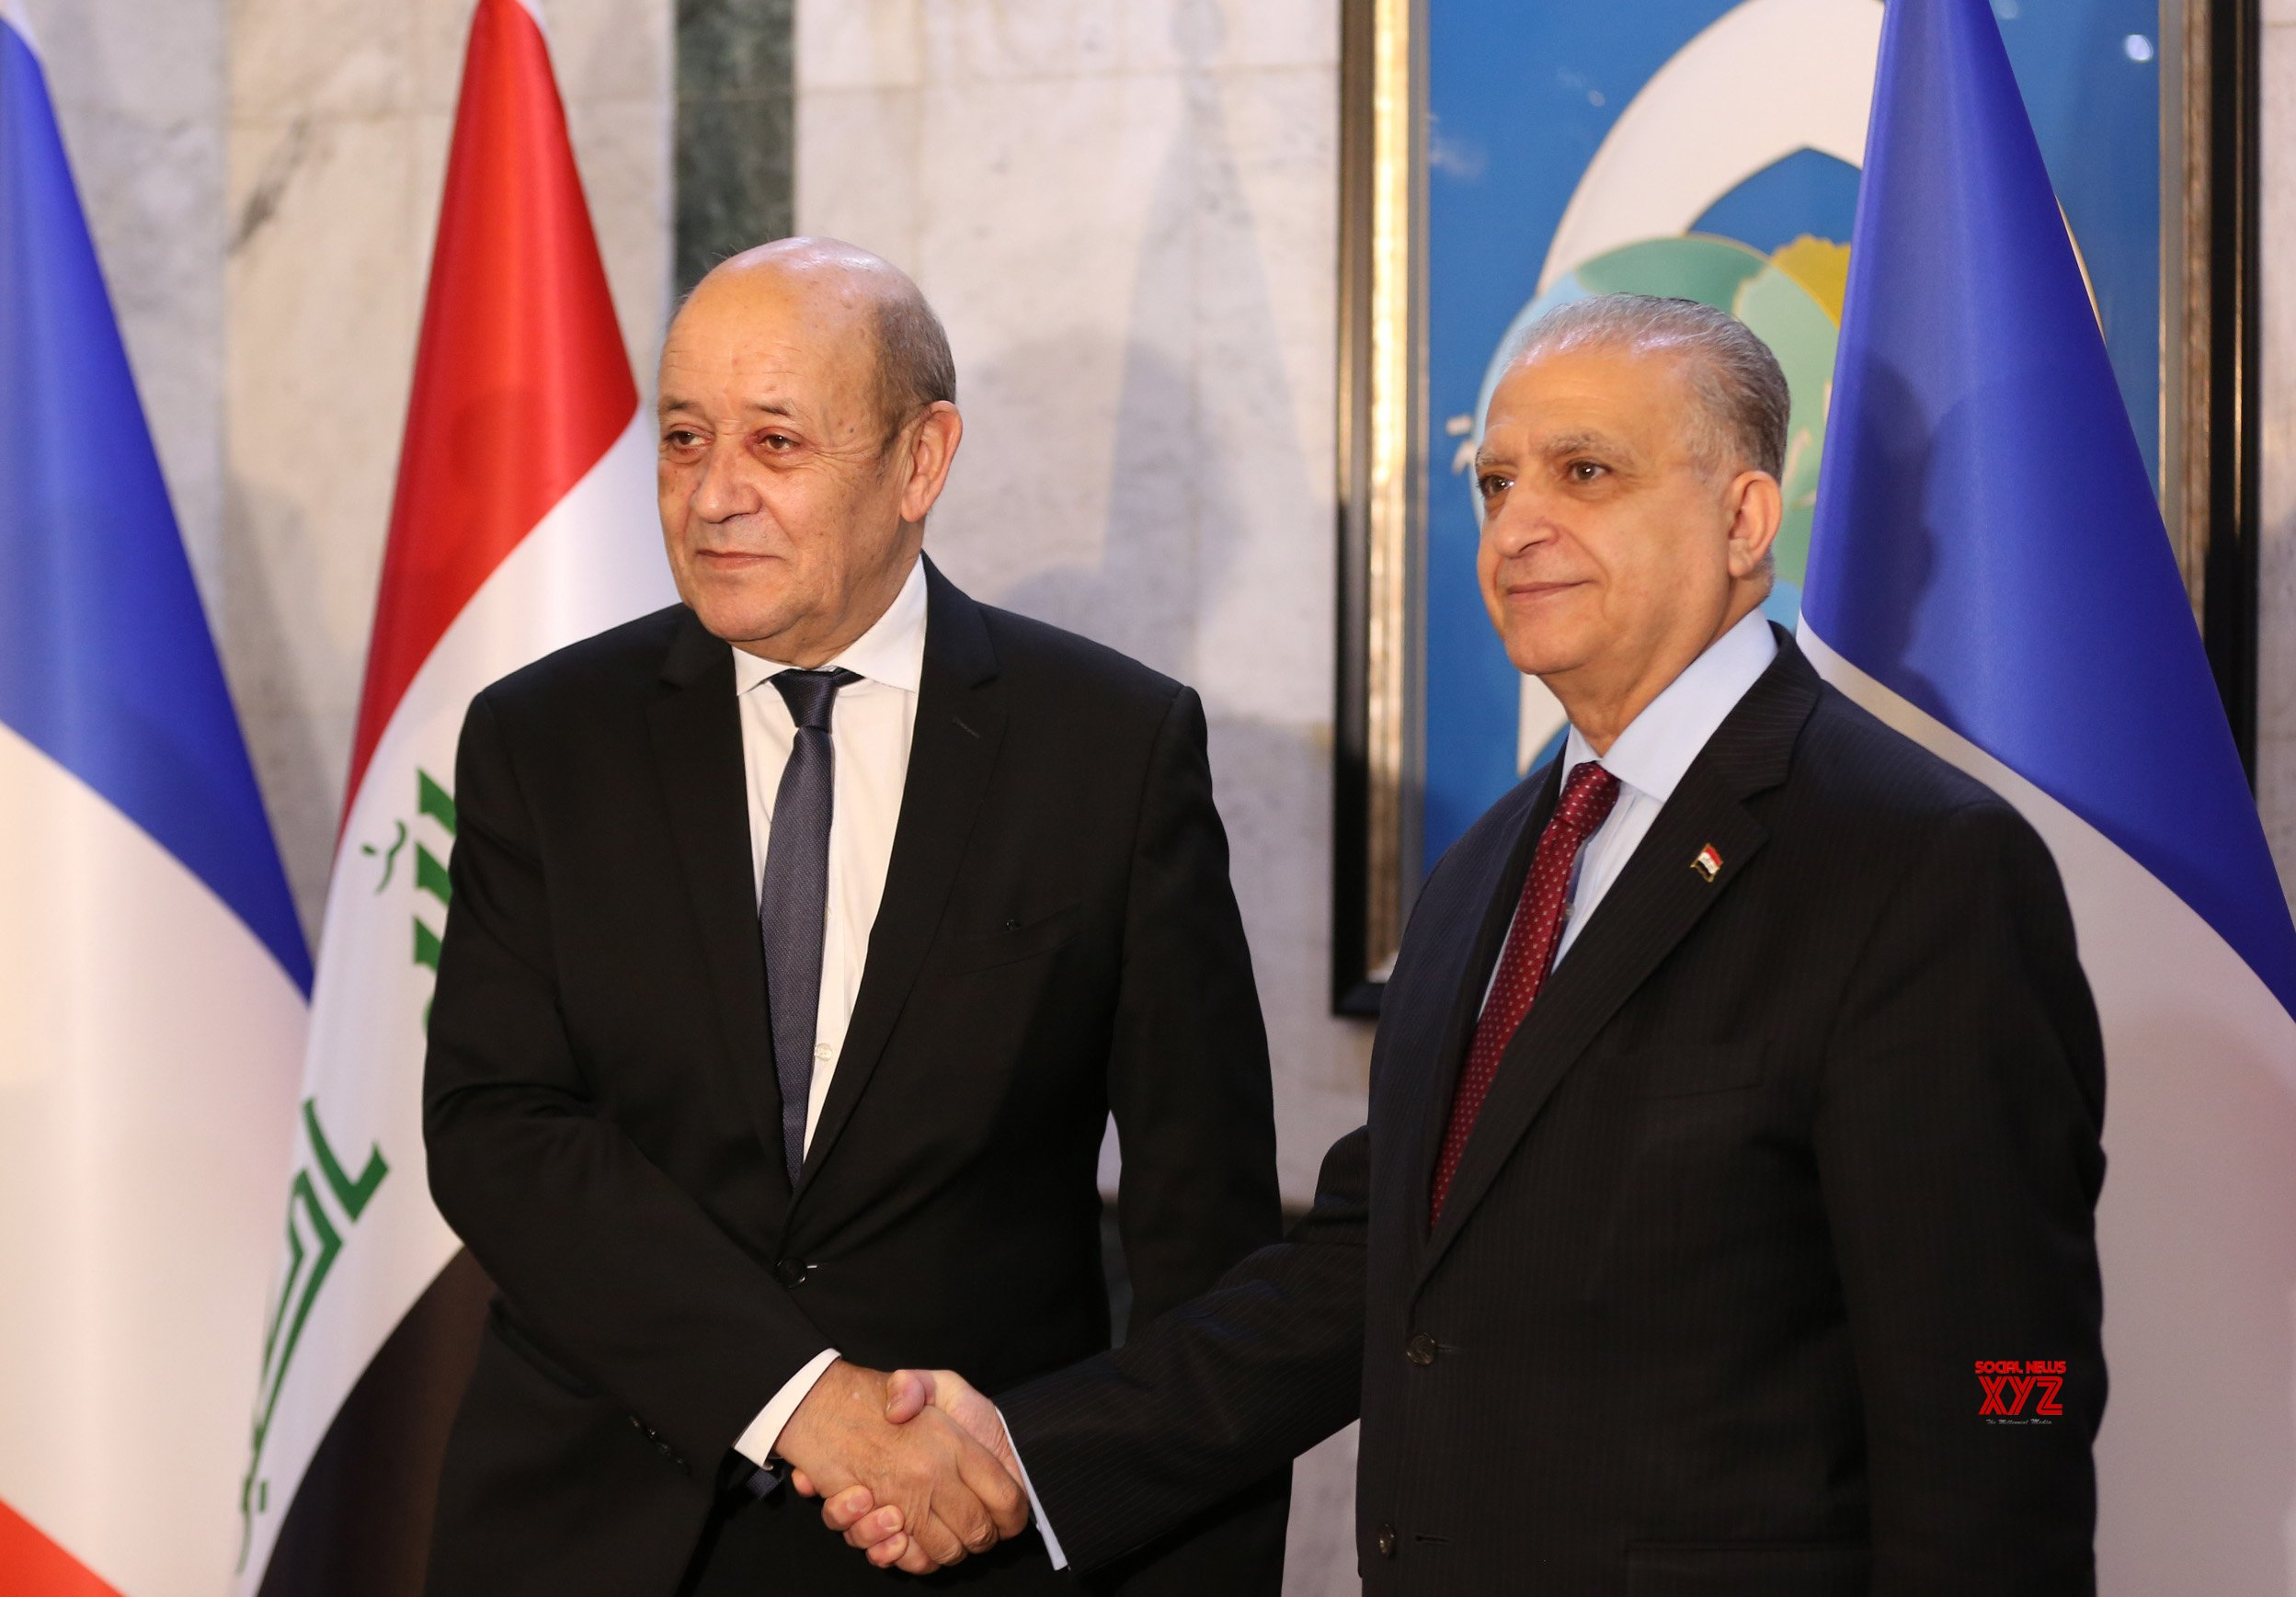 IRAQ - BAGHDAD - FRENCH PM - VISIT #Gallery